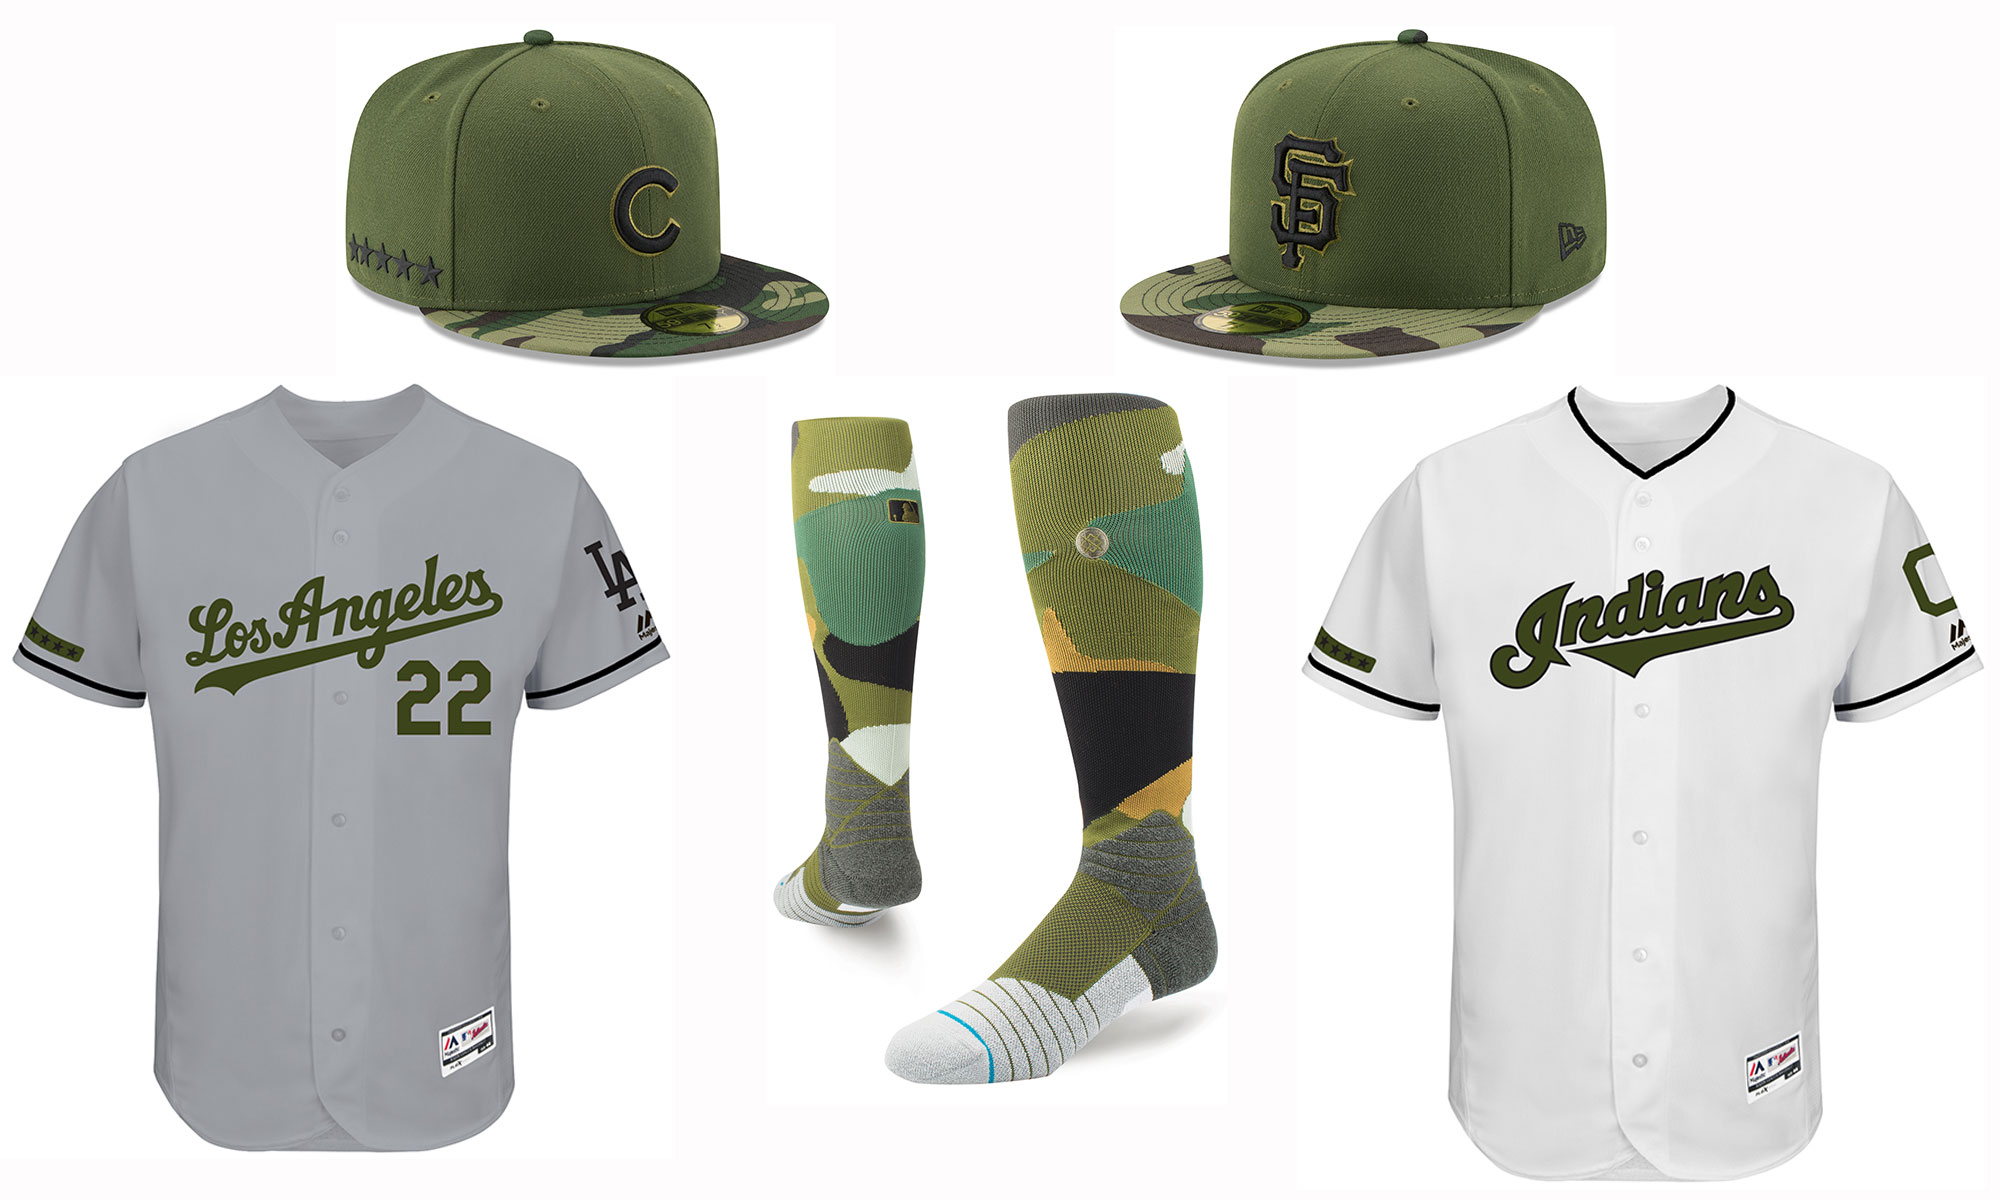 9d3693b5 MLB unveils colorful new uniforms for All-Star game, Fourth of July ...